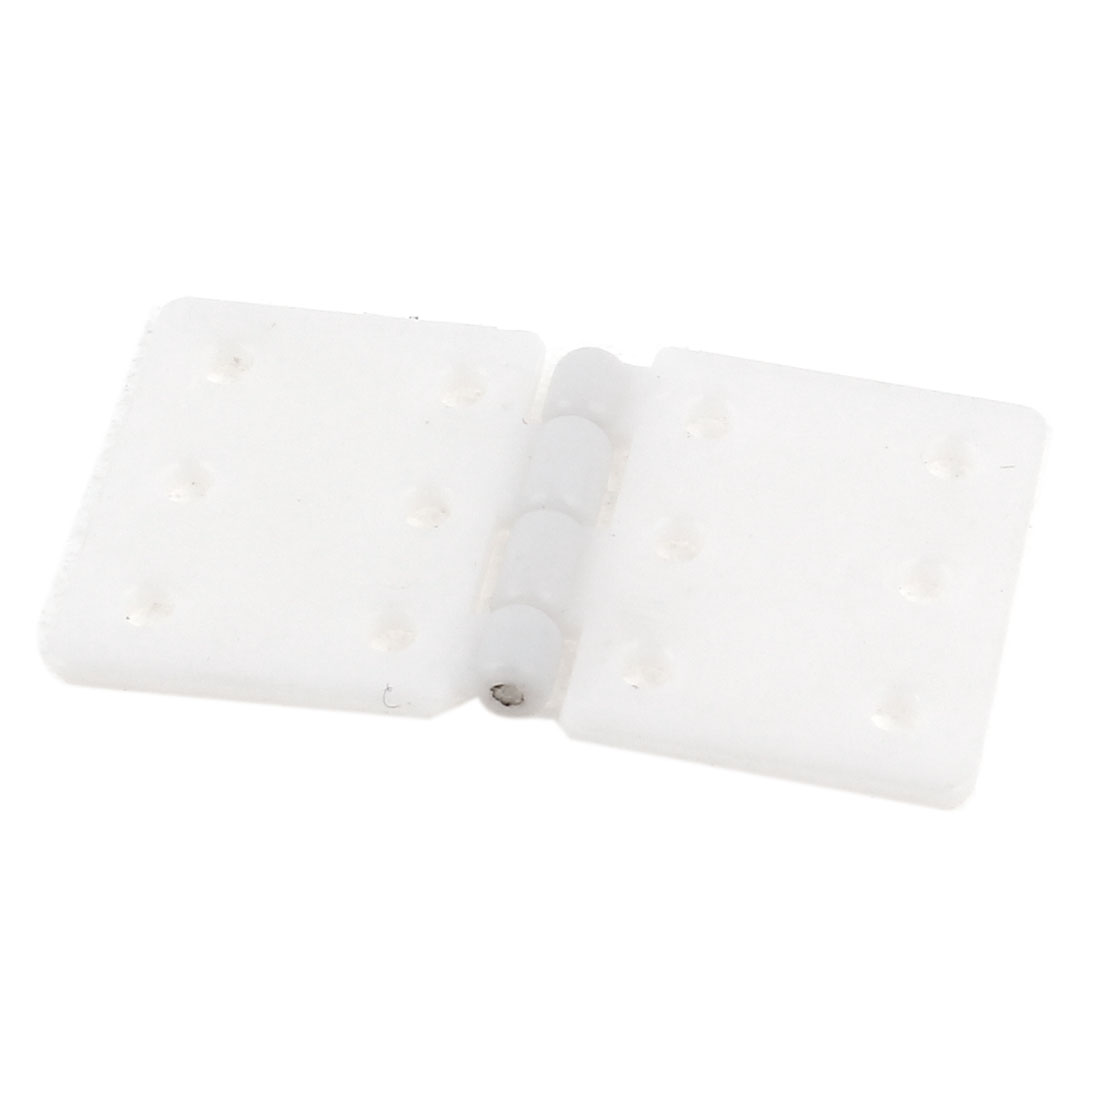 Small RC Aircraft Foldable White Plasitc Pinned Hinges 28 x 16mm